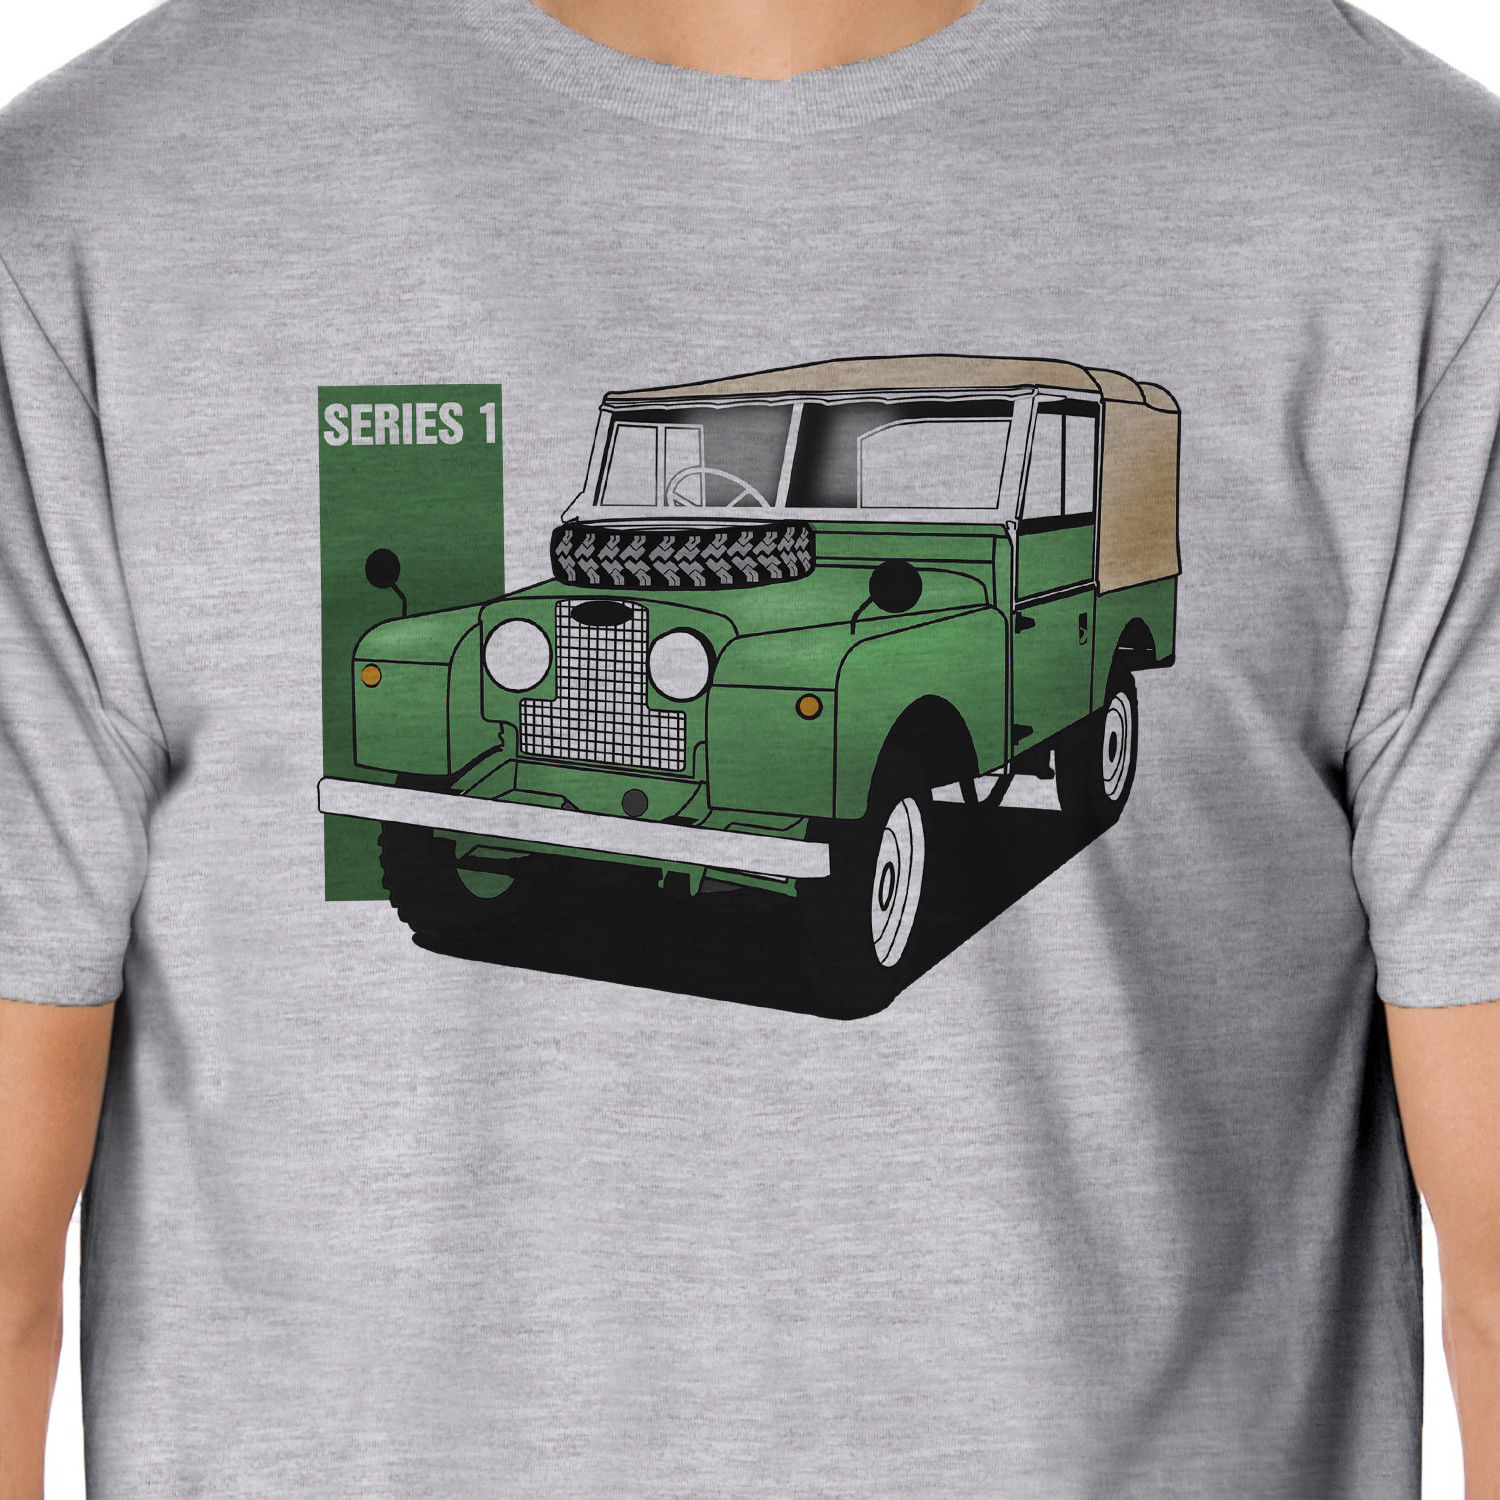 2018 Hot Sale 100% cotton Artcars - Classic Land Rover Series 1 Inspired T-Shirt Summer Style Tee shirt ...